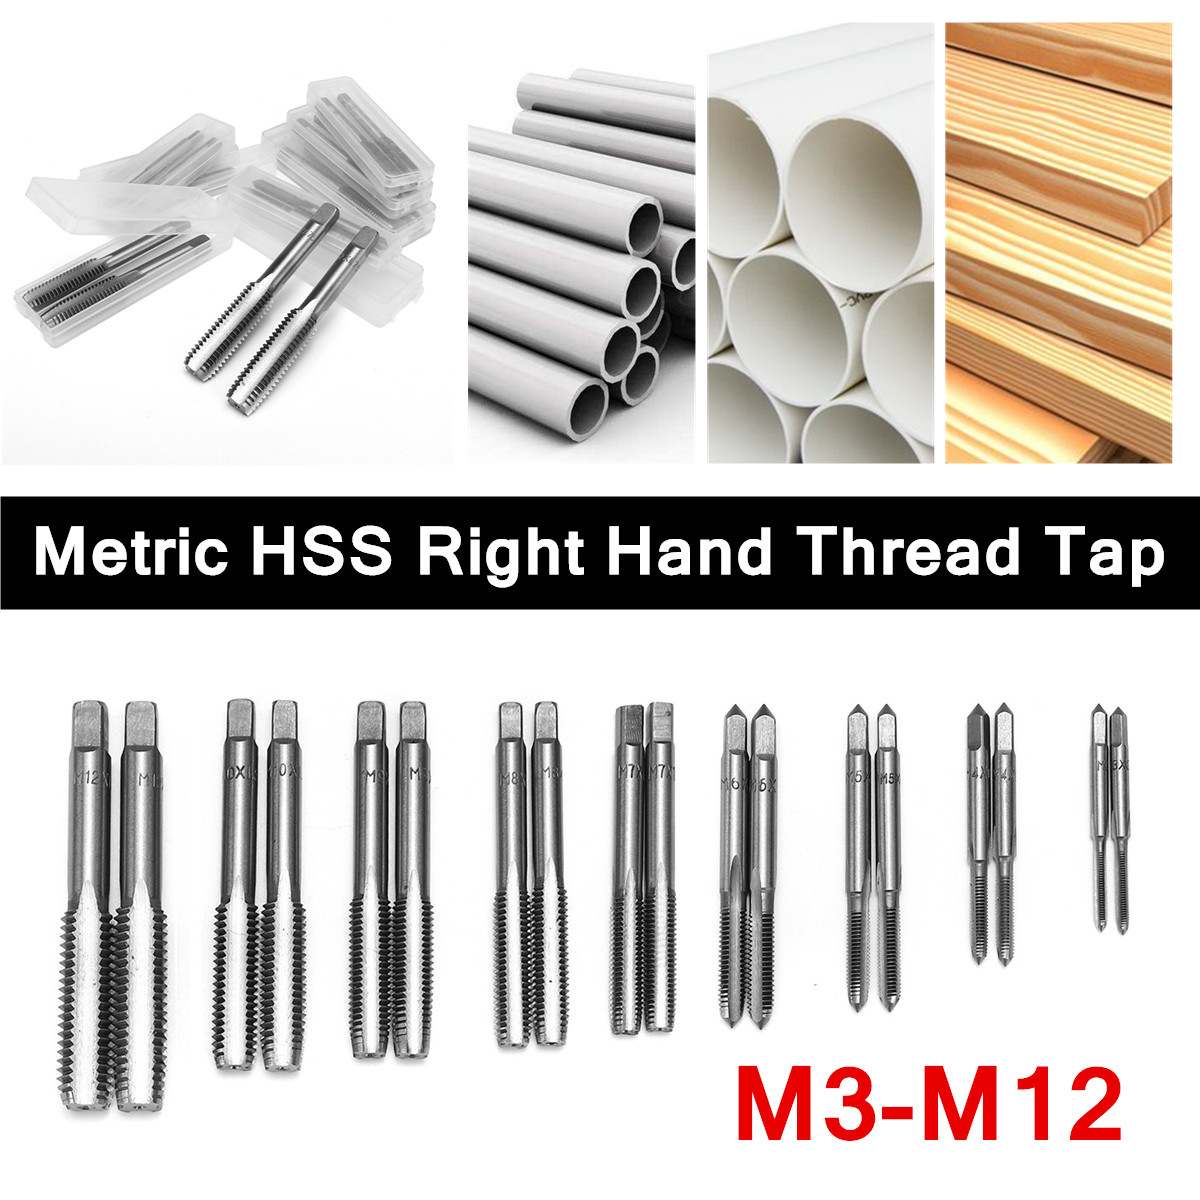 2Pcs Thread Taps Set Spiral Inch M3 M4 M5 M6 M7 M8 M9 M10 M12 Industrial Metric HSS Right Hand Drill Bits Plug Taps Drill Bits